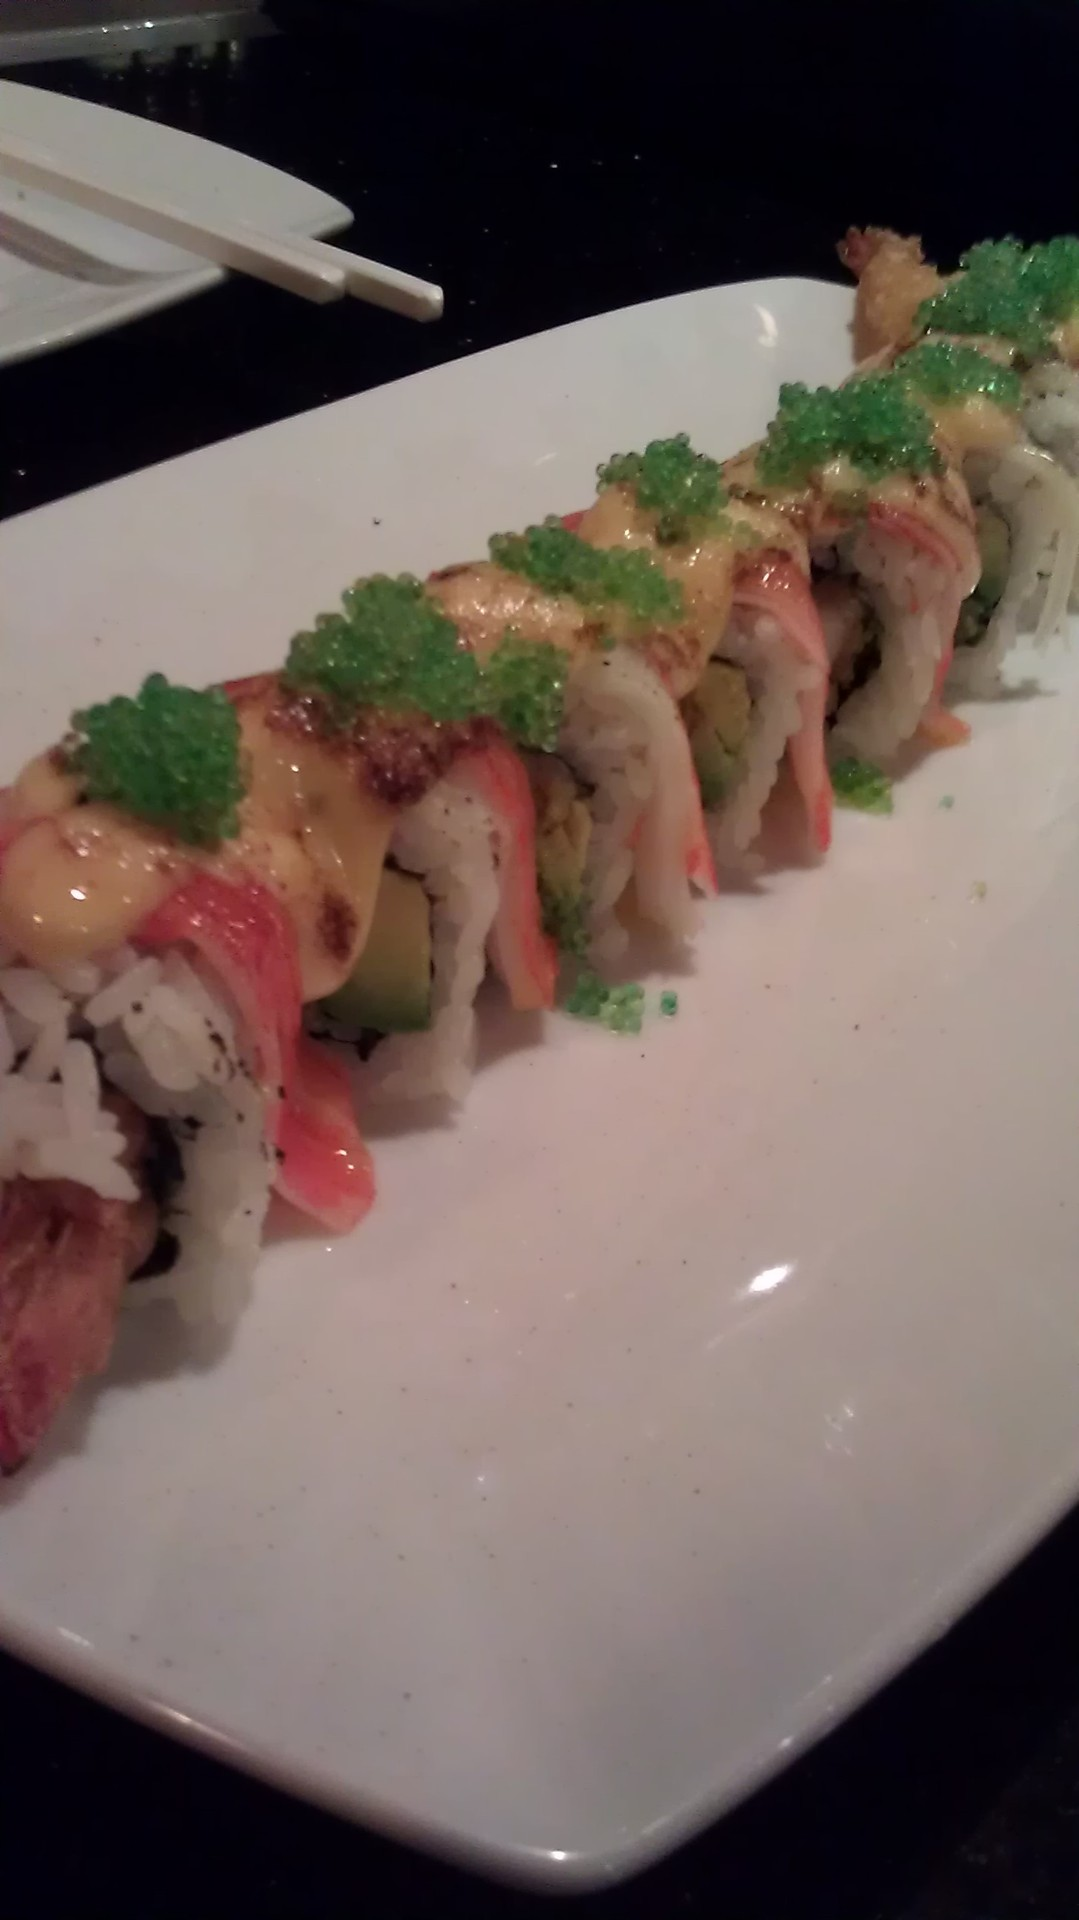 Introducing our newest roll… The Waterfall. Inside - Shrimp Tempura and Avocado. Outside - Spicy Crabstick and green masago.